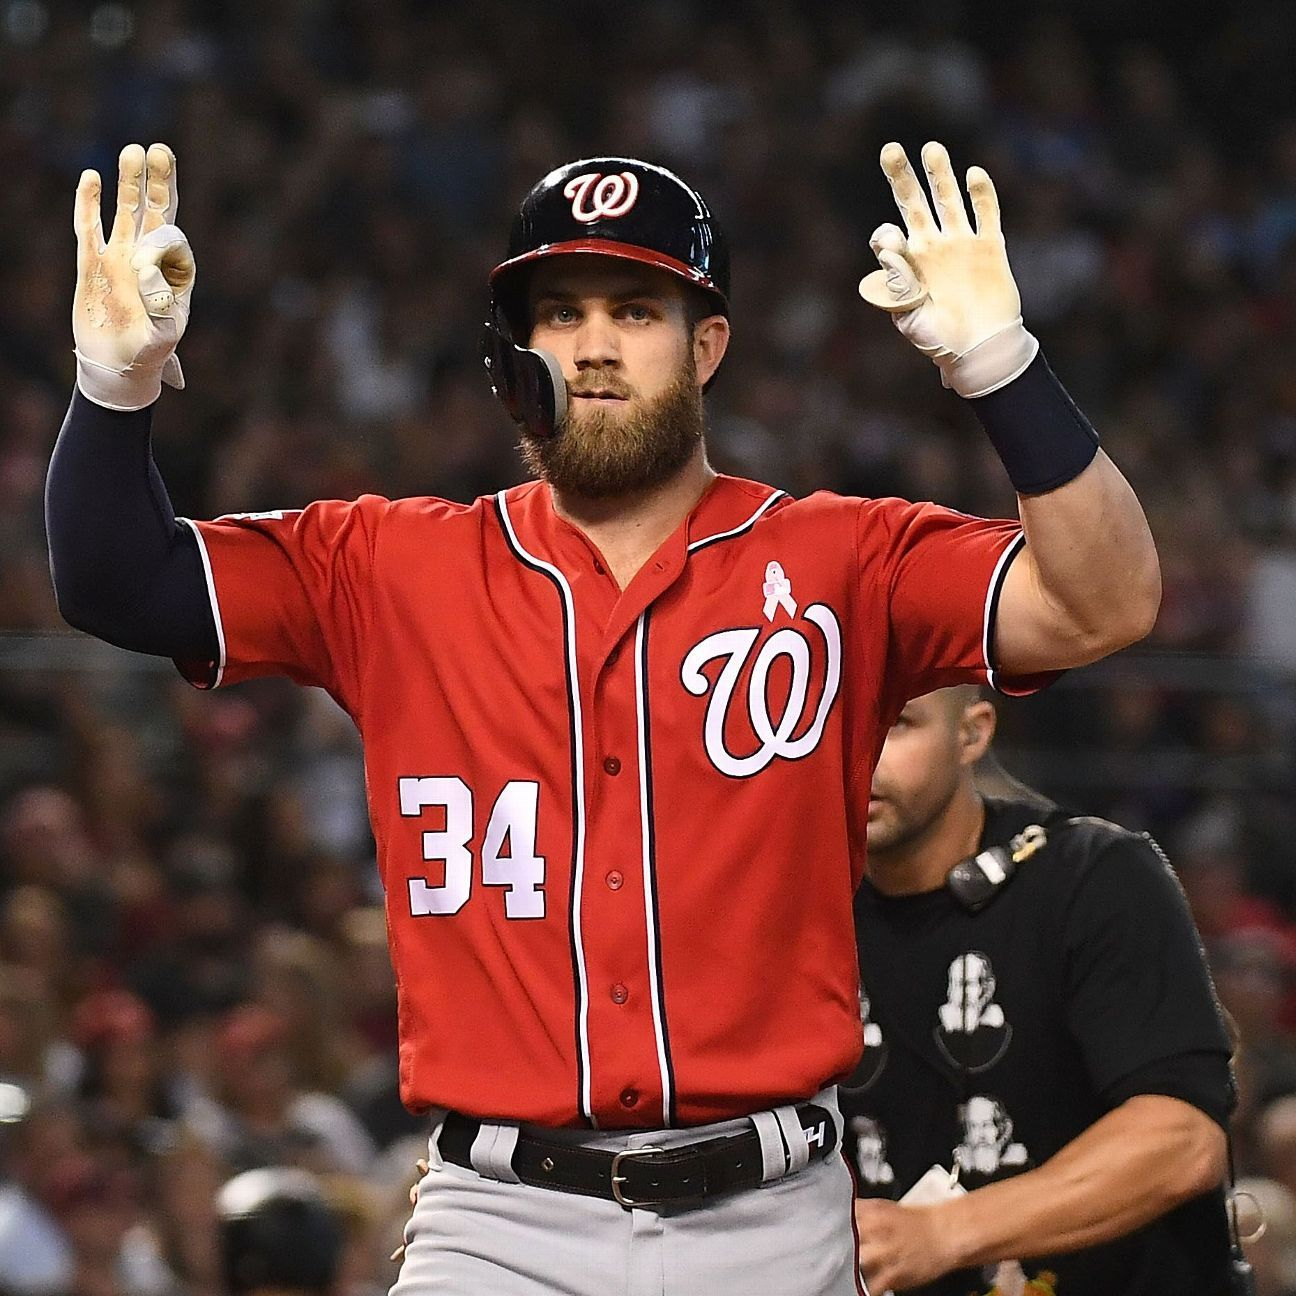 Washington Nationals Rout New York Mets 25-4 In Nats' Highest-scoring Game Ever